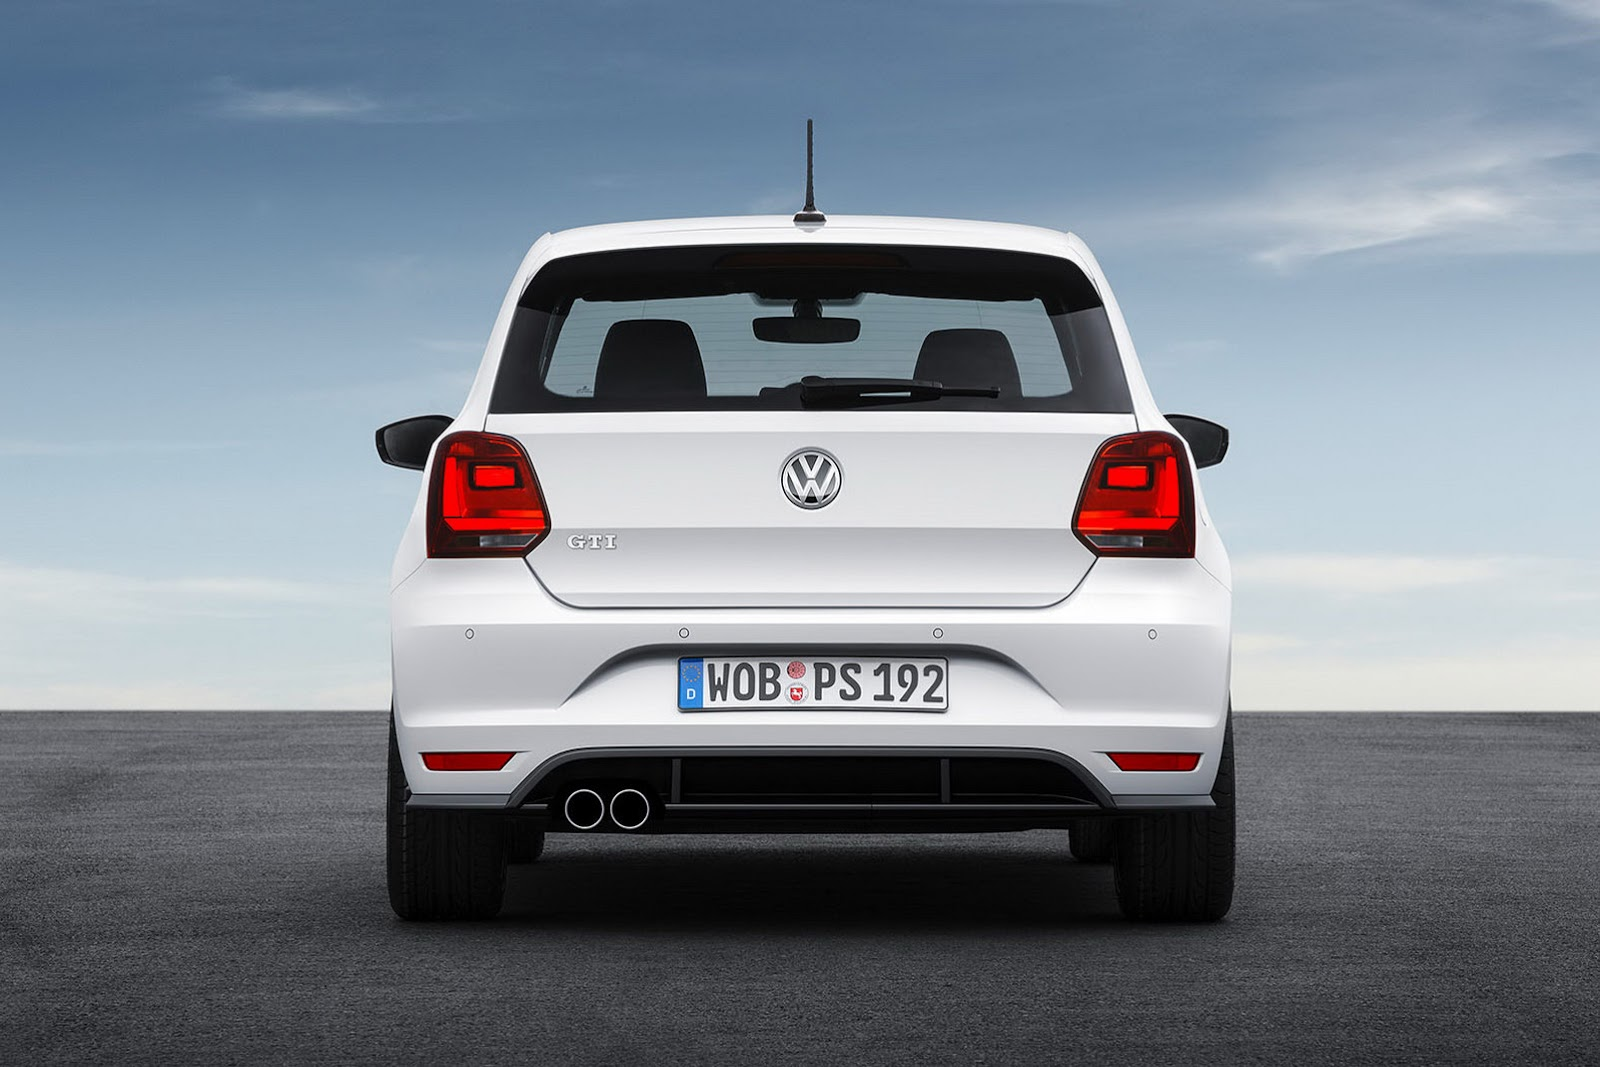 2015 volkswagen polo gti revealed with 1 8 tsi engine. Black Bedroom Furniture Sets. Home Design Ideas